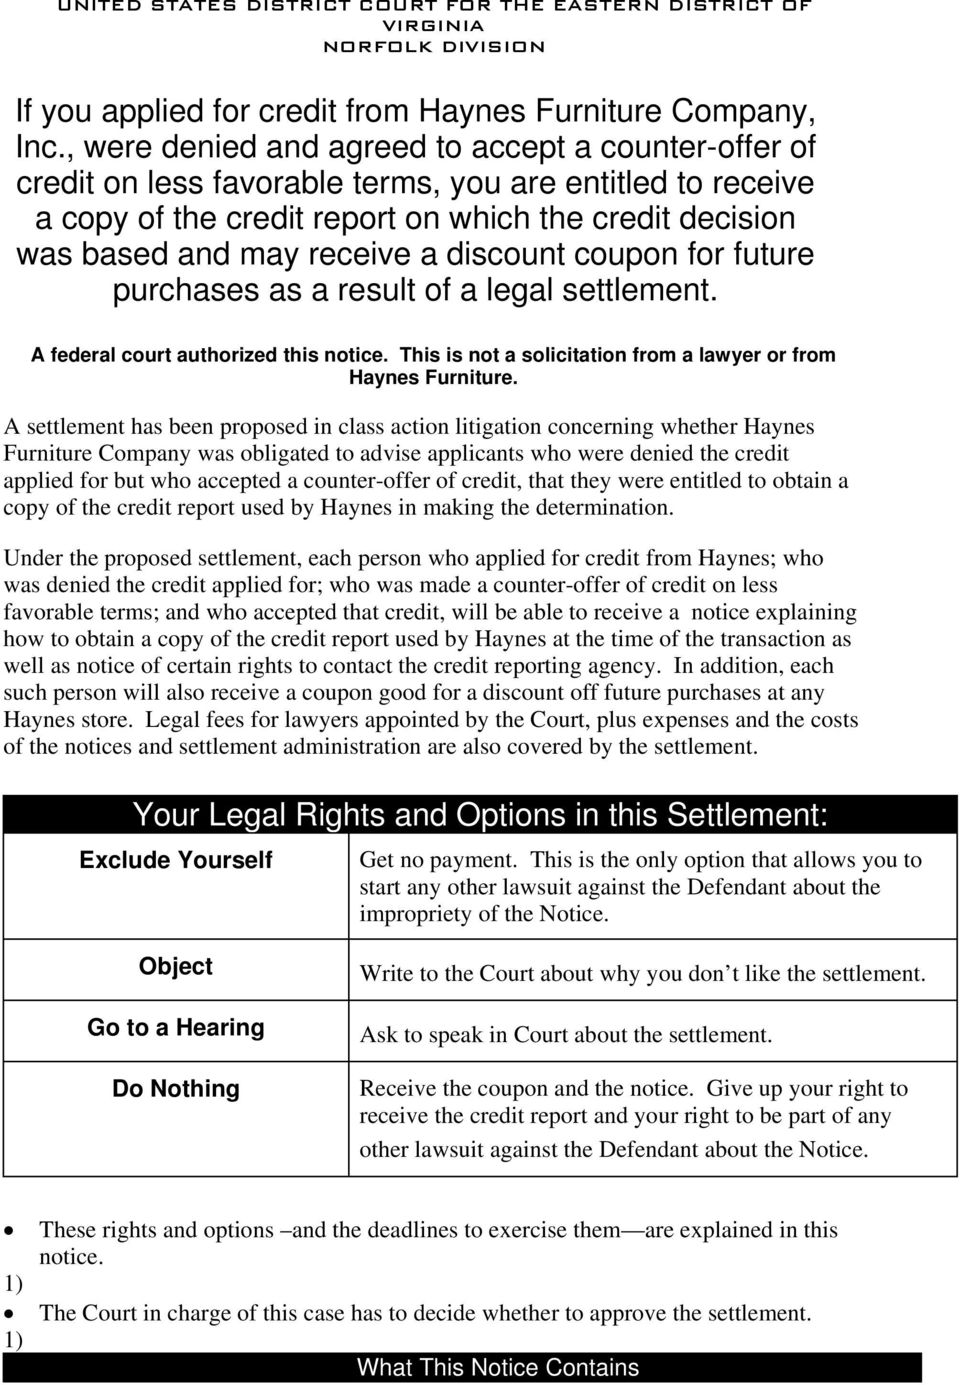 discount coupon for future purchases as a result of a legal settlement. A federal court authorized this notice. This is not a solicitation from a lawyer or from Haynes Furniture.